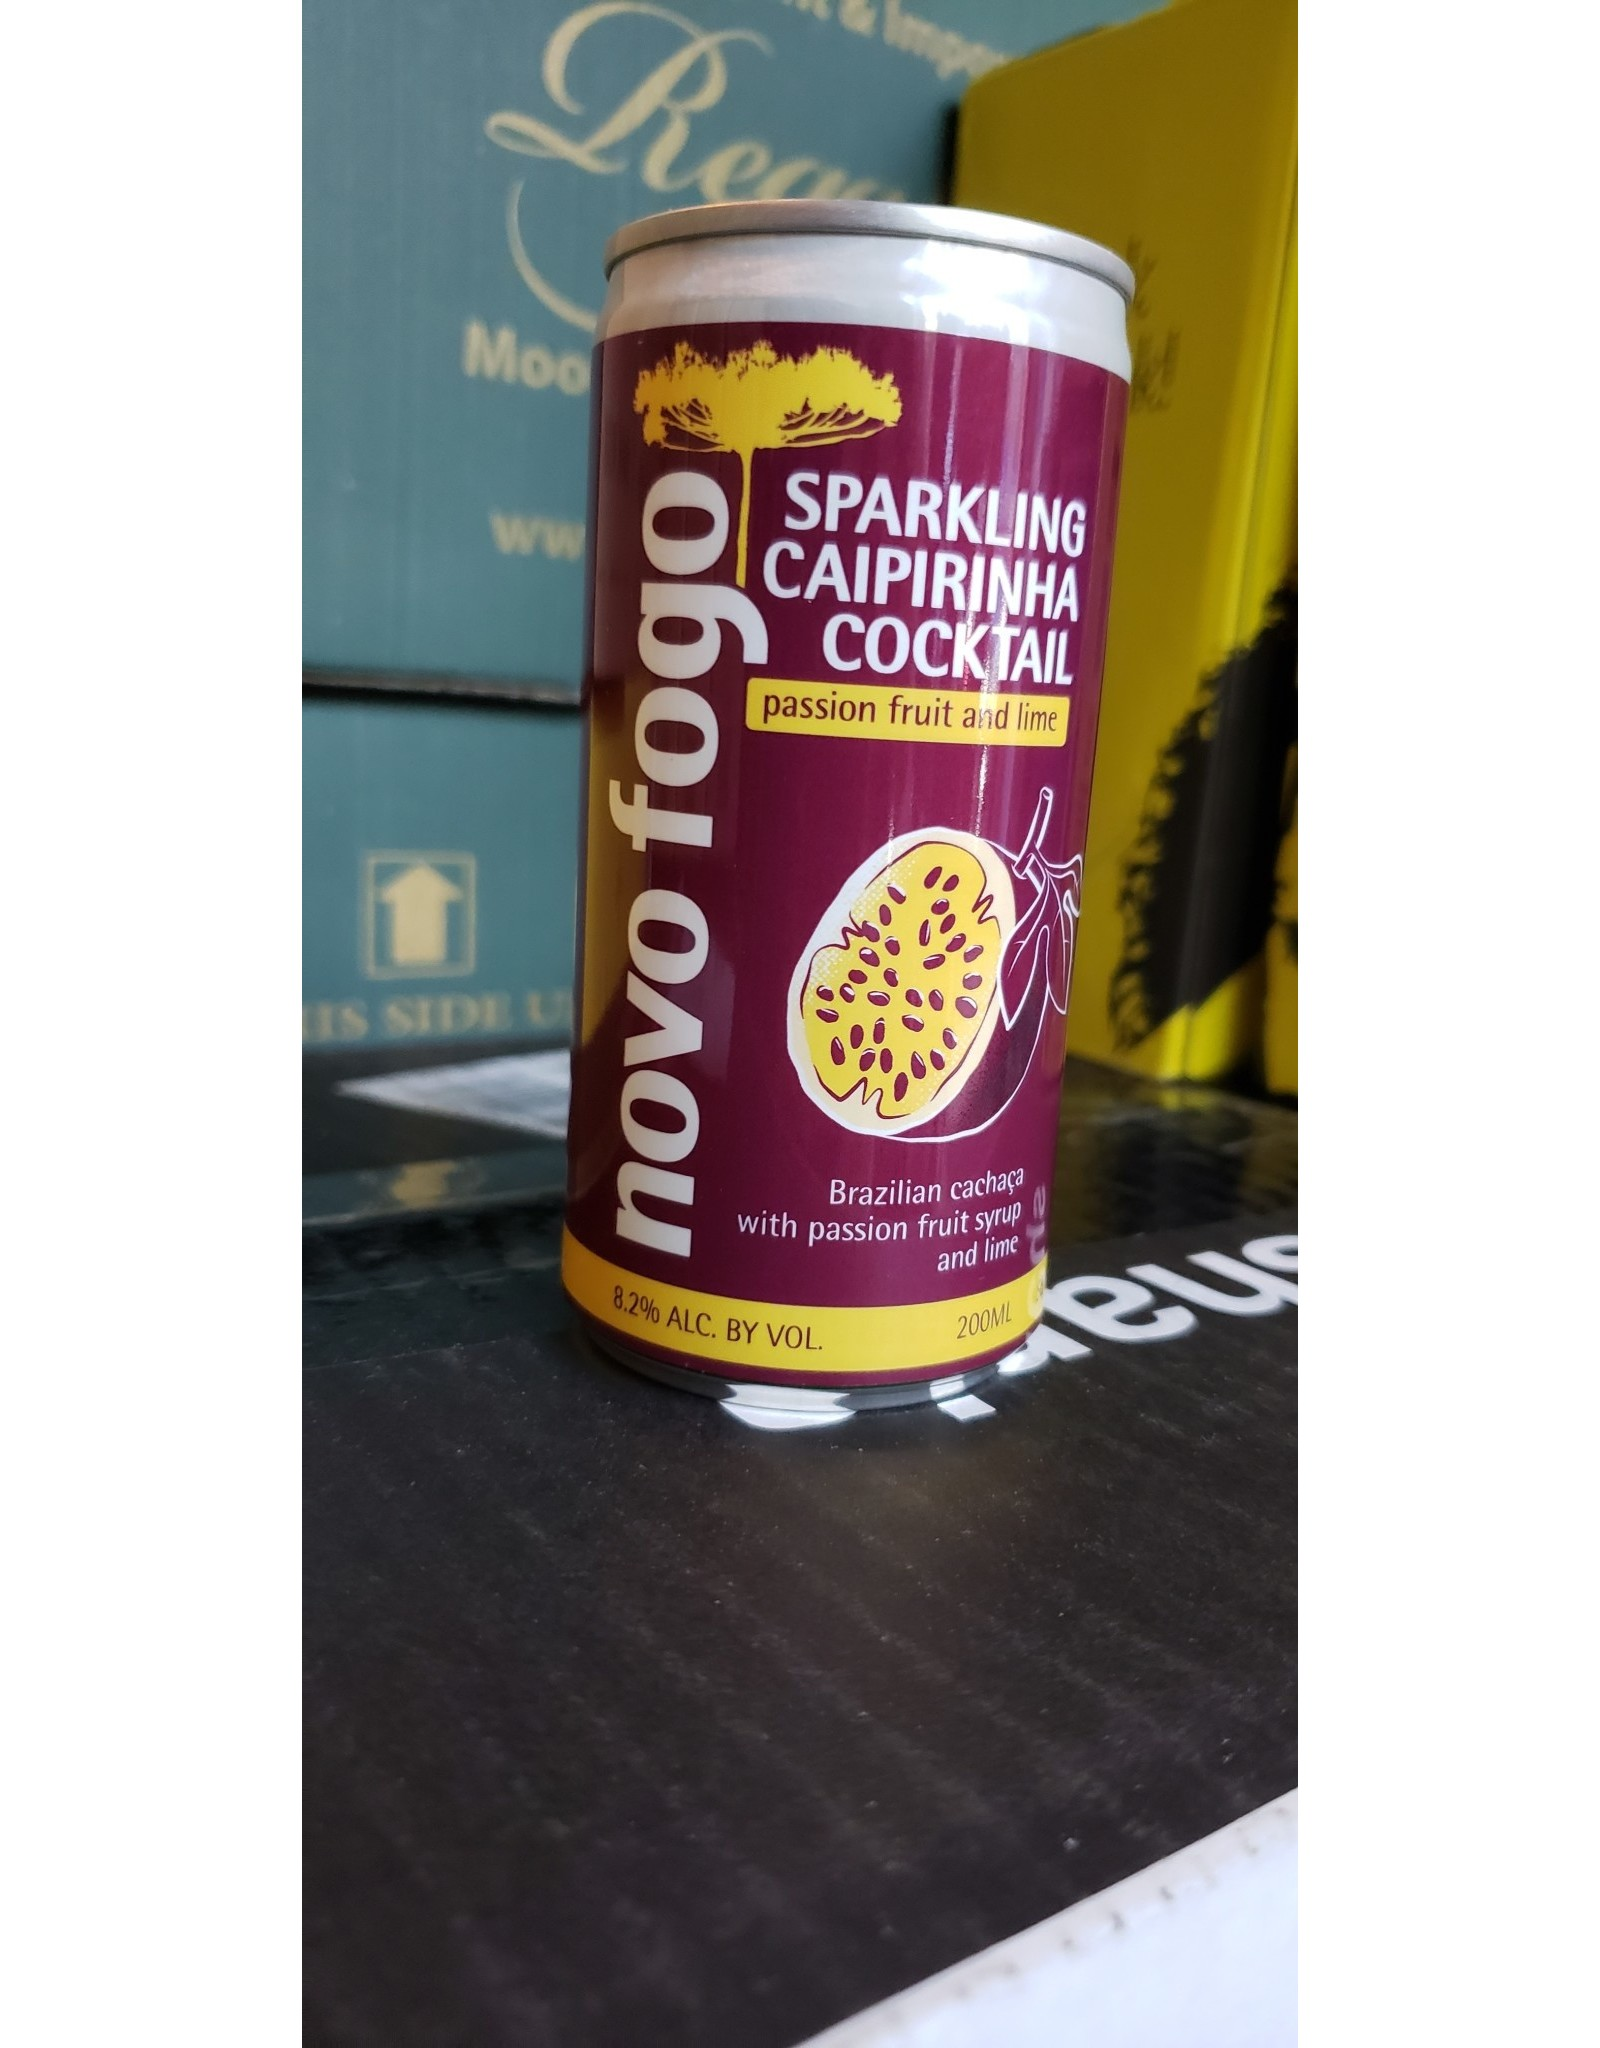 Novo Fogo Passion Fruit and Lime Sparkling Caipirinha - Brazil (200ml can)